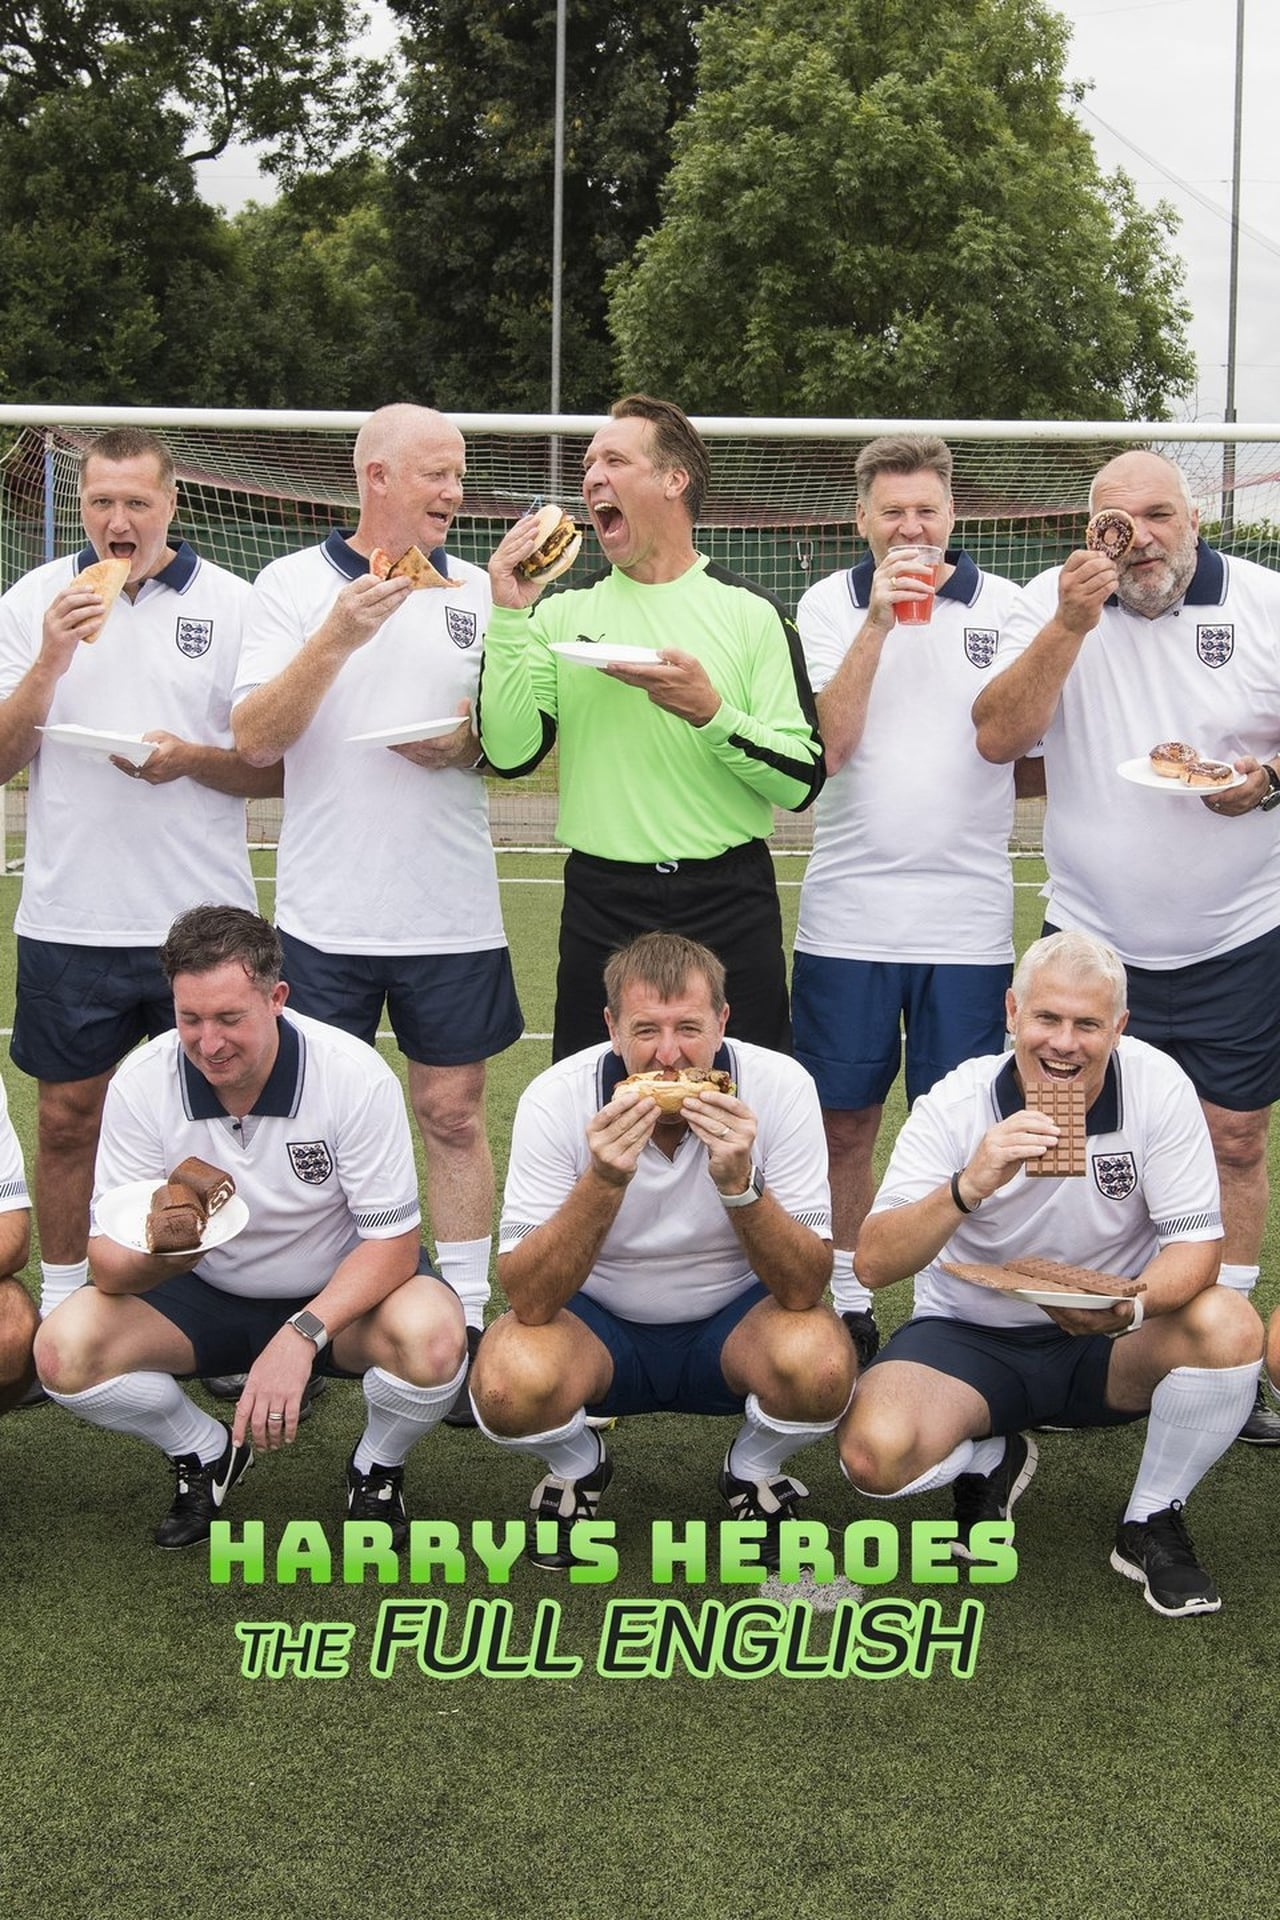 Harry's Heroes: The Full English